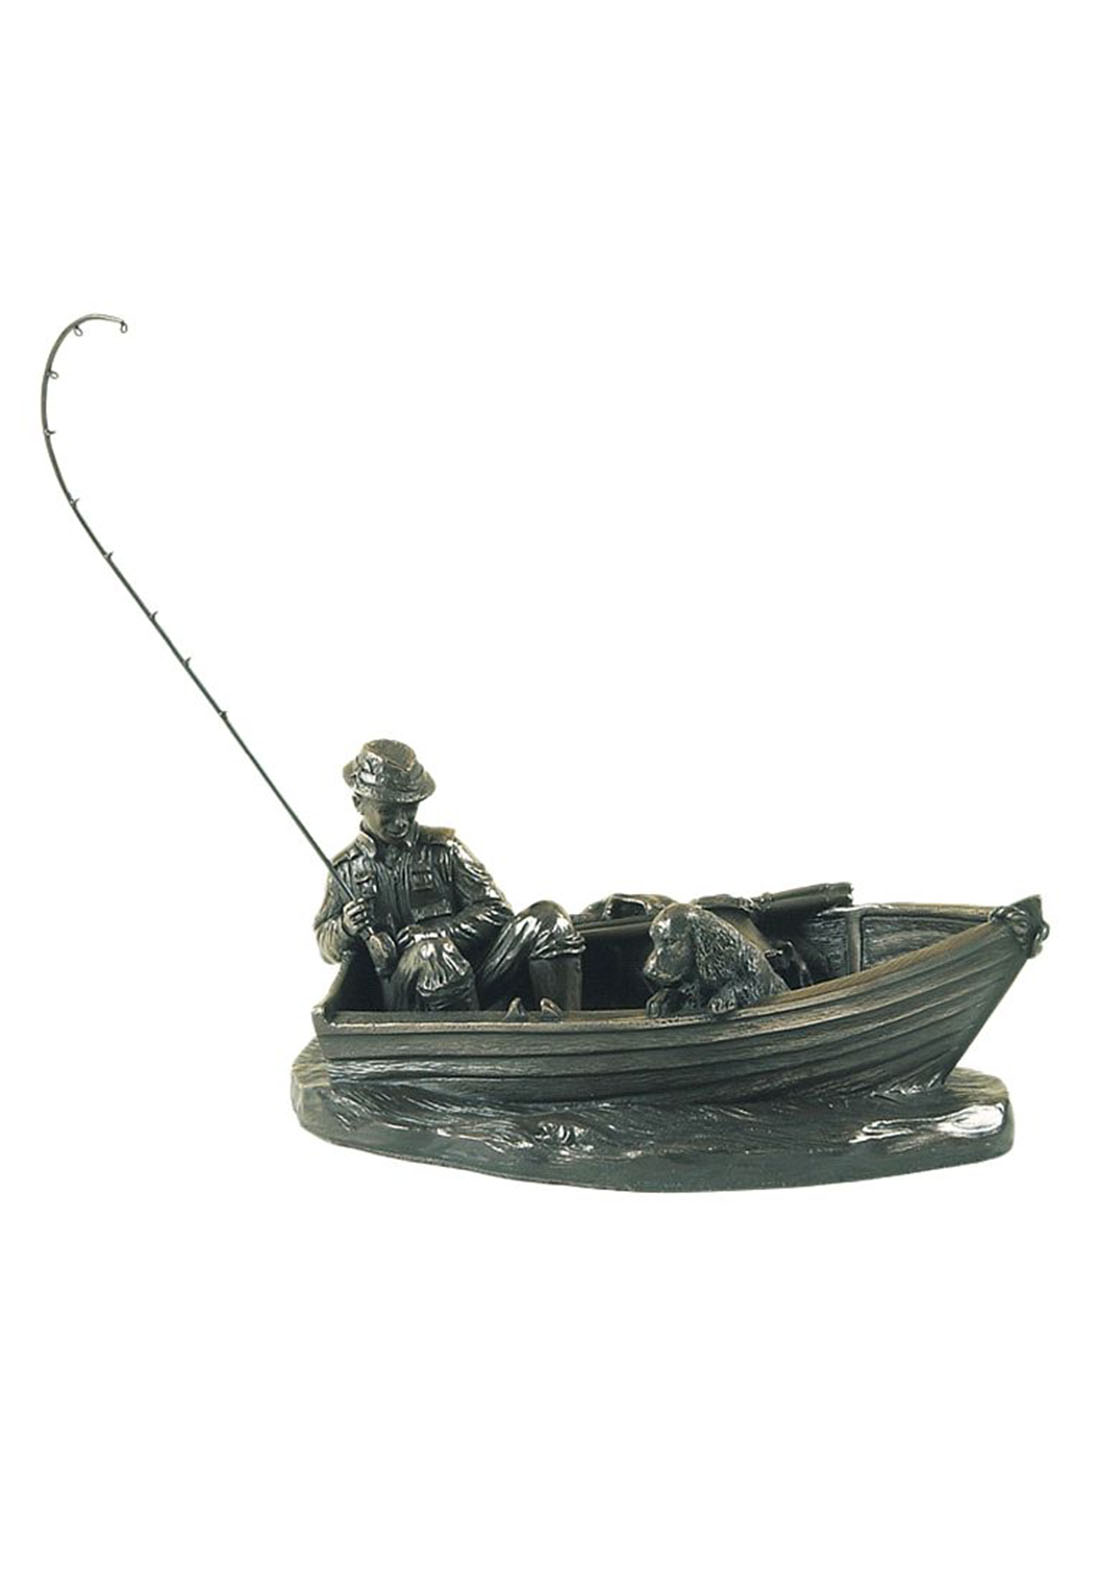 Genesis, A Day's Fishing Ornament